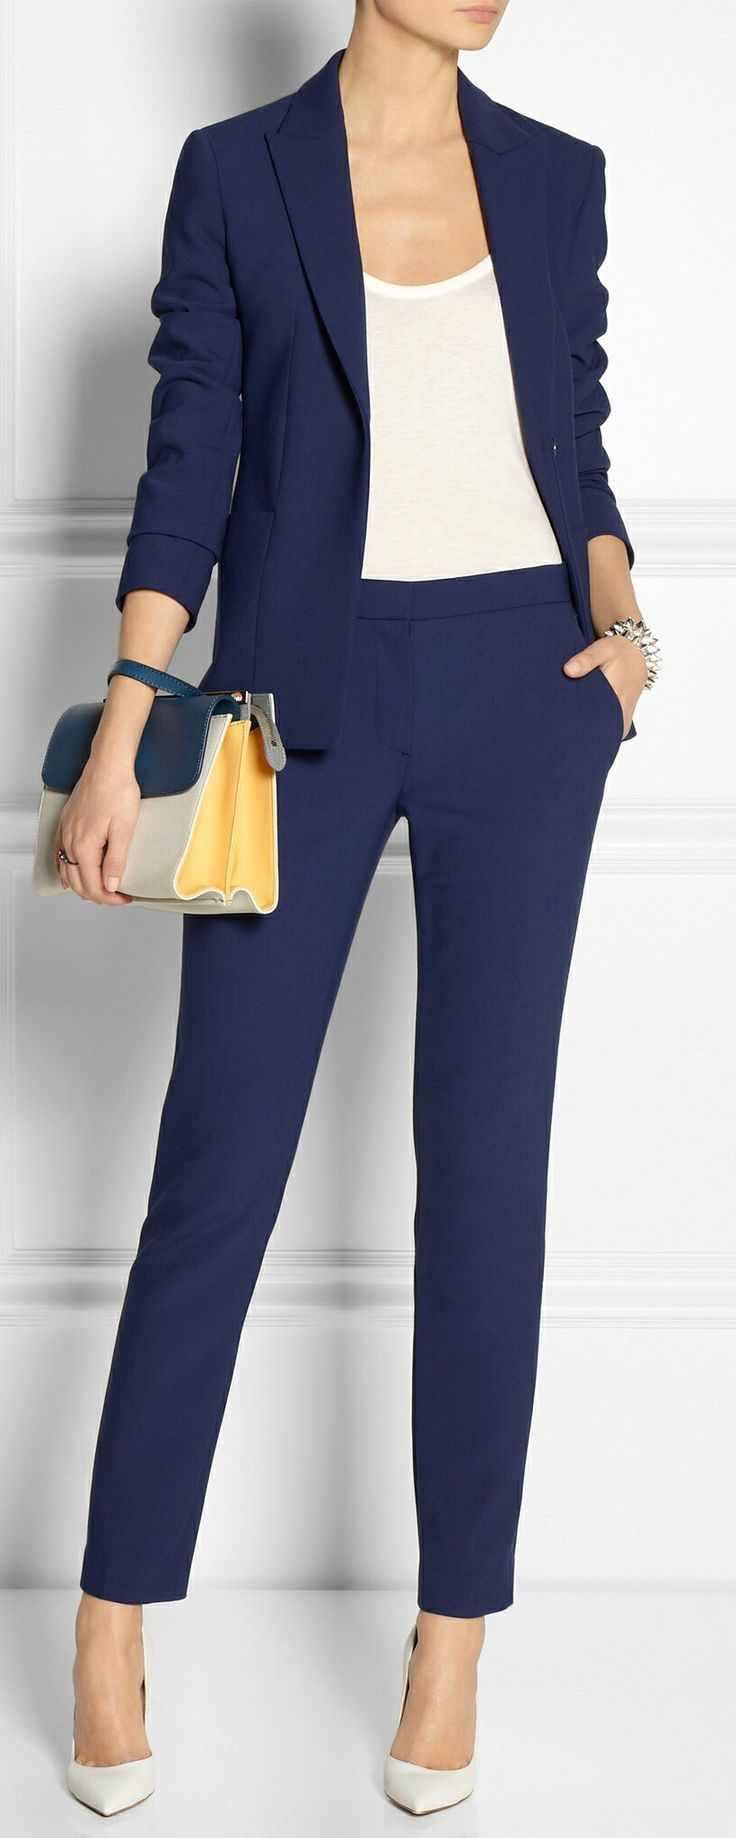 18 Work Outfits Every Working Woman Should Have | Trousers ...